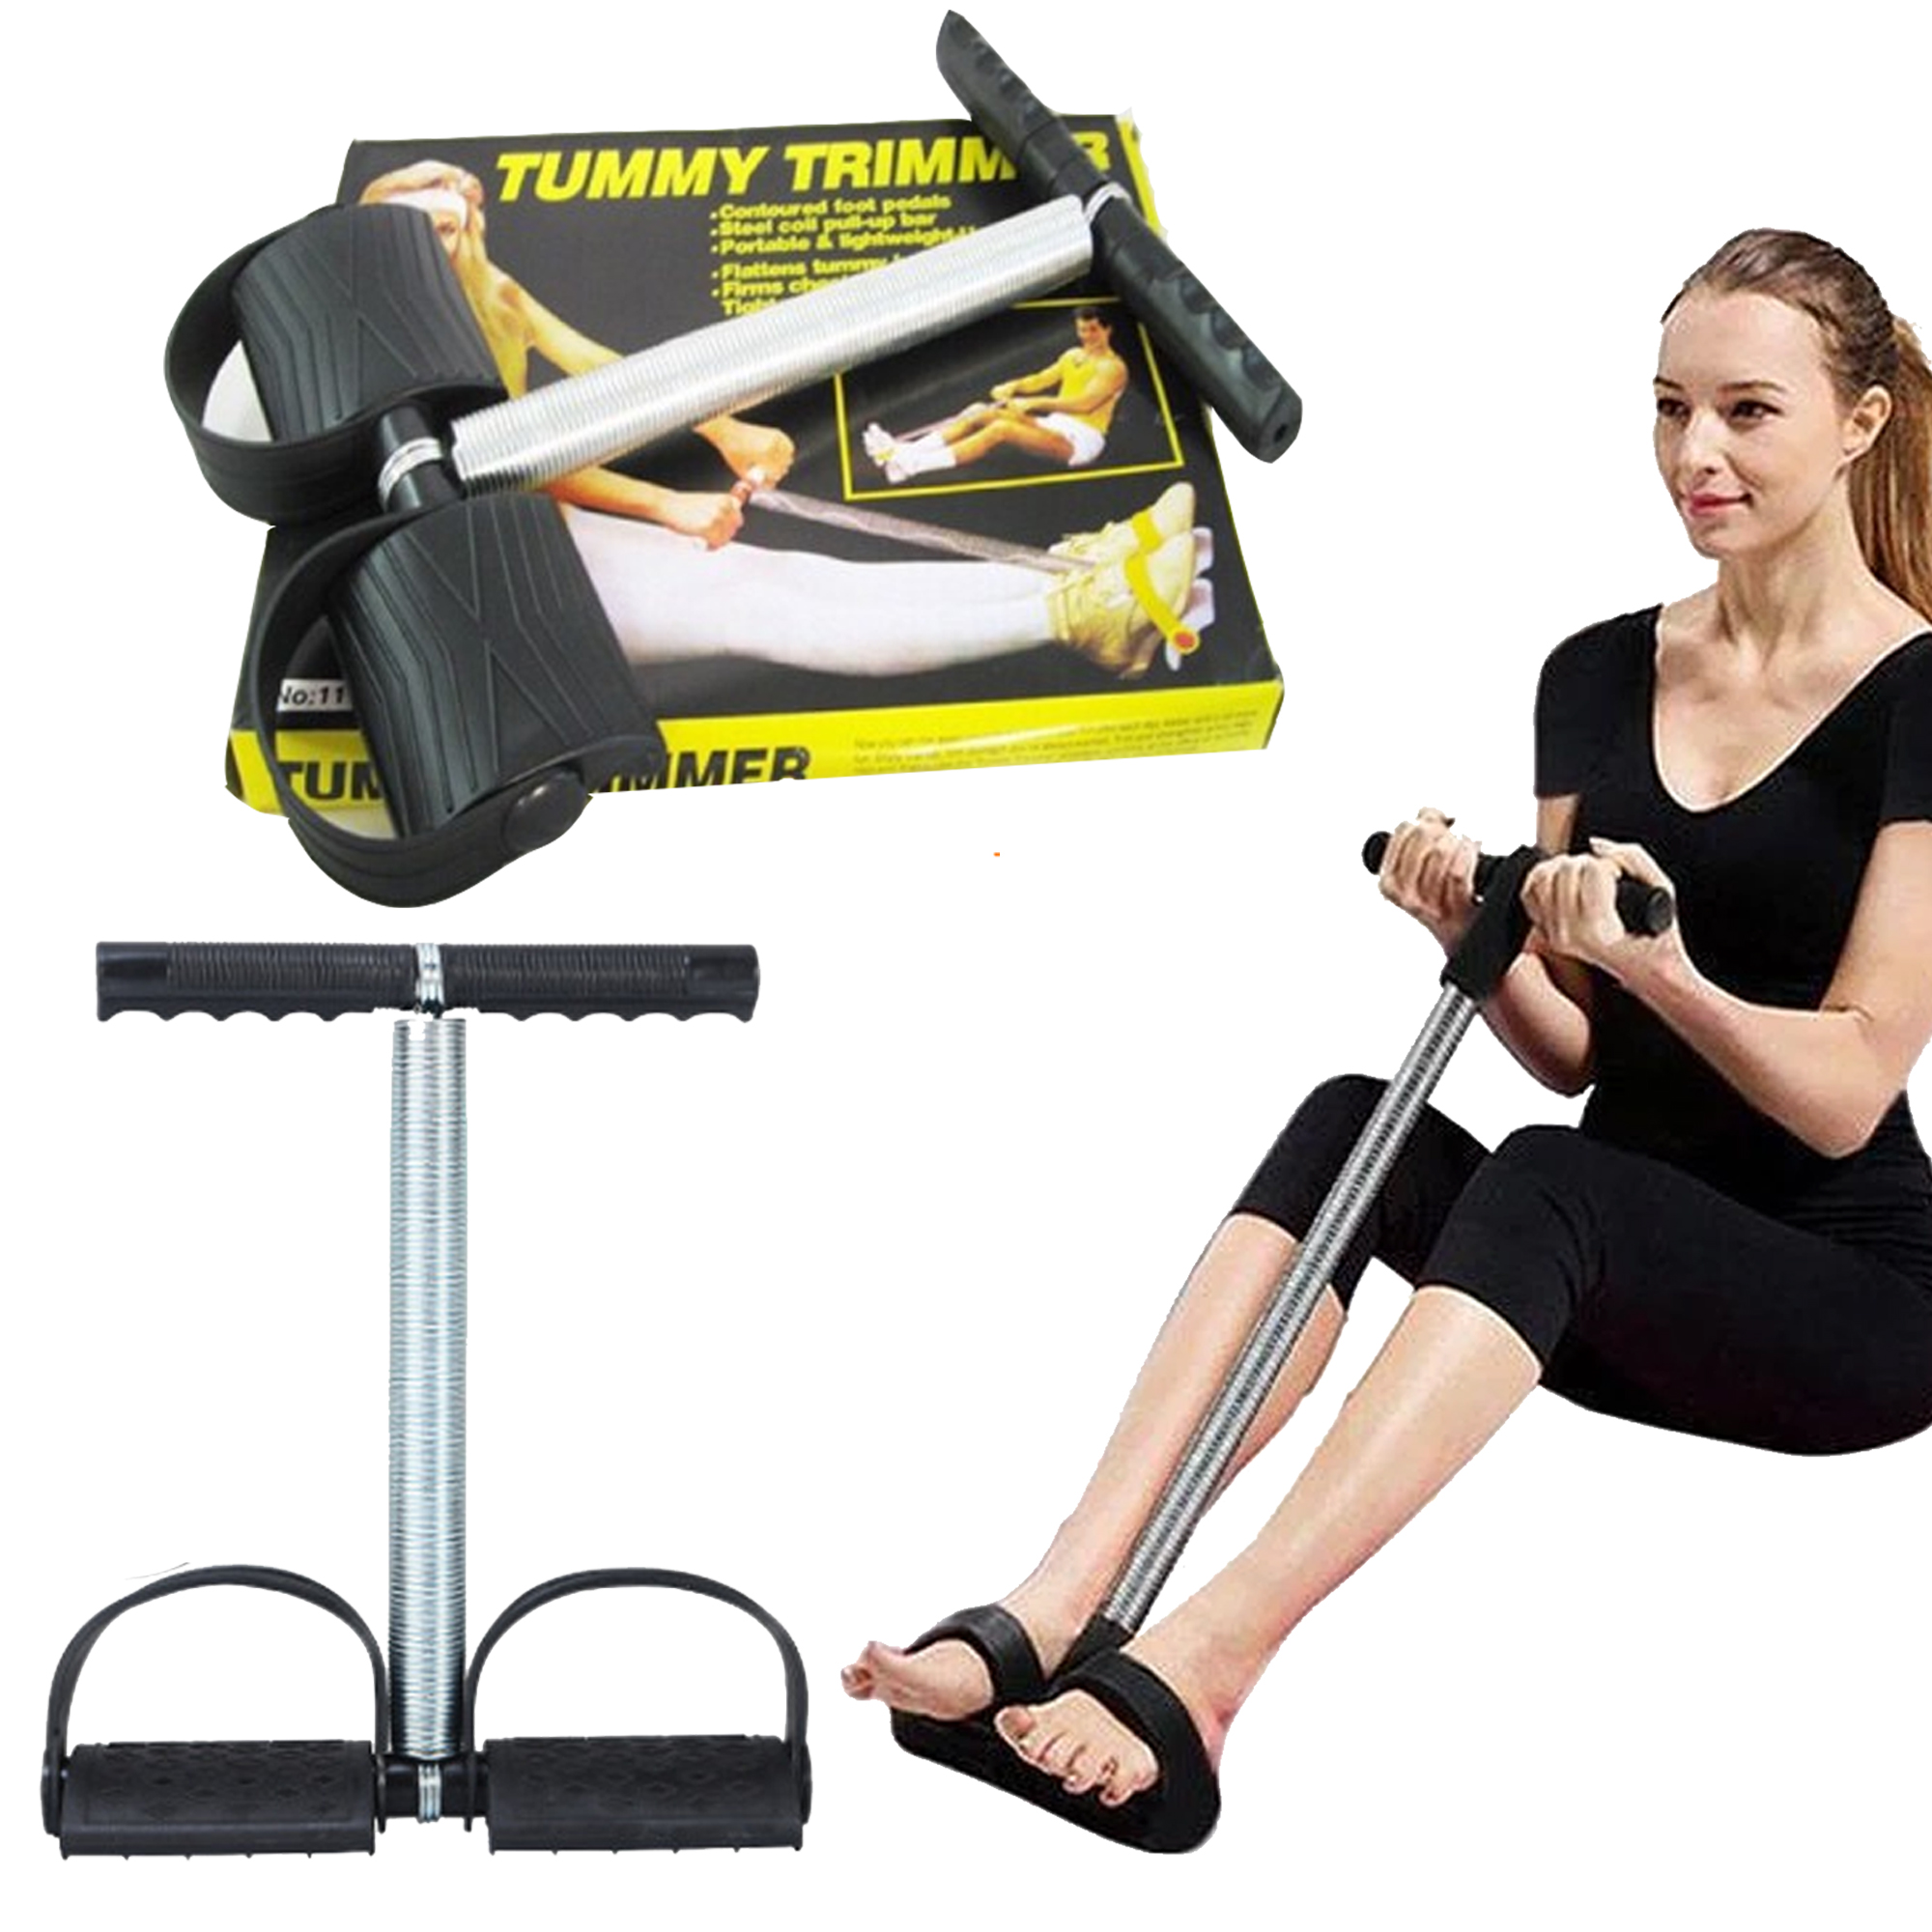 MHI Discounted Tummy Trimmer 13 Inch Bally Fat Burner Body Exerciser Weigh Loss Home Gym Home Workout Arm Muscle Builder Single And Double Spring